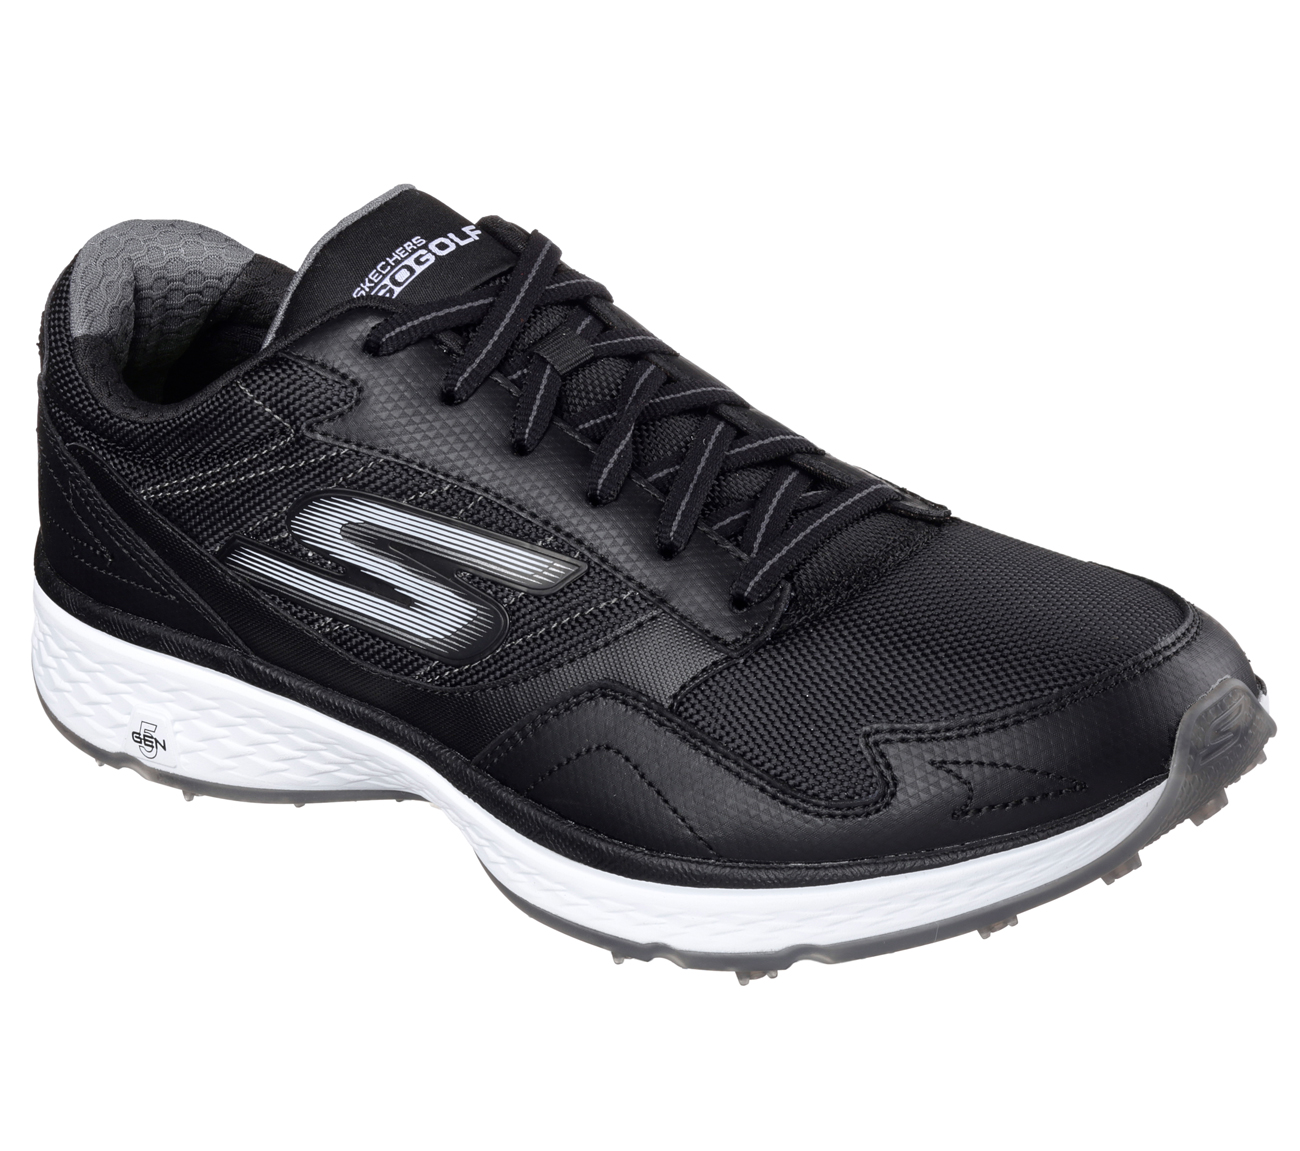 Sketchers Men's Go Golf Fairway Golf Shoe - Black